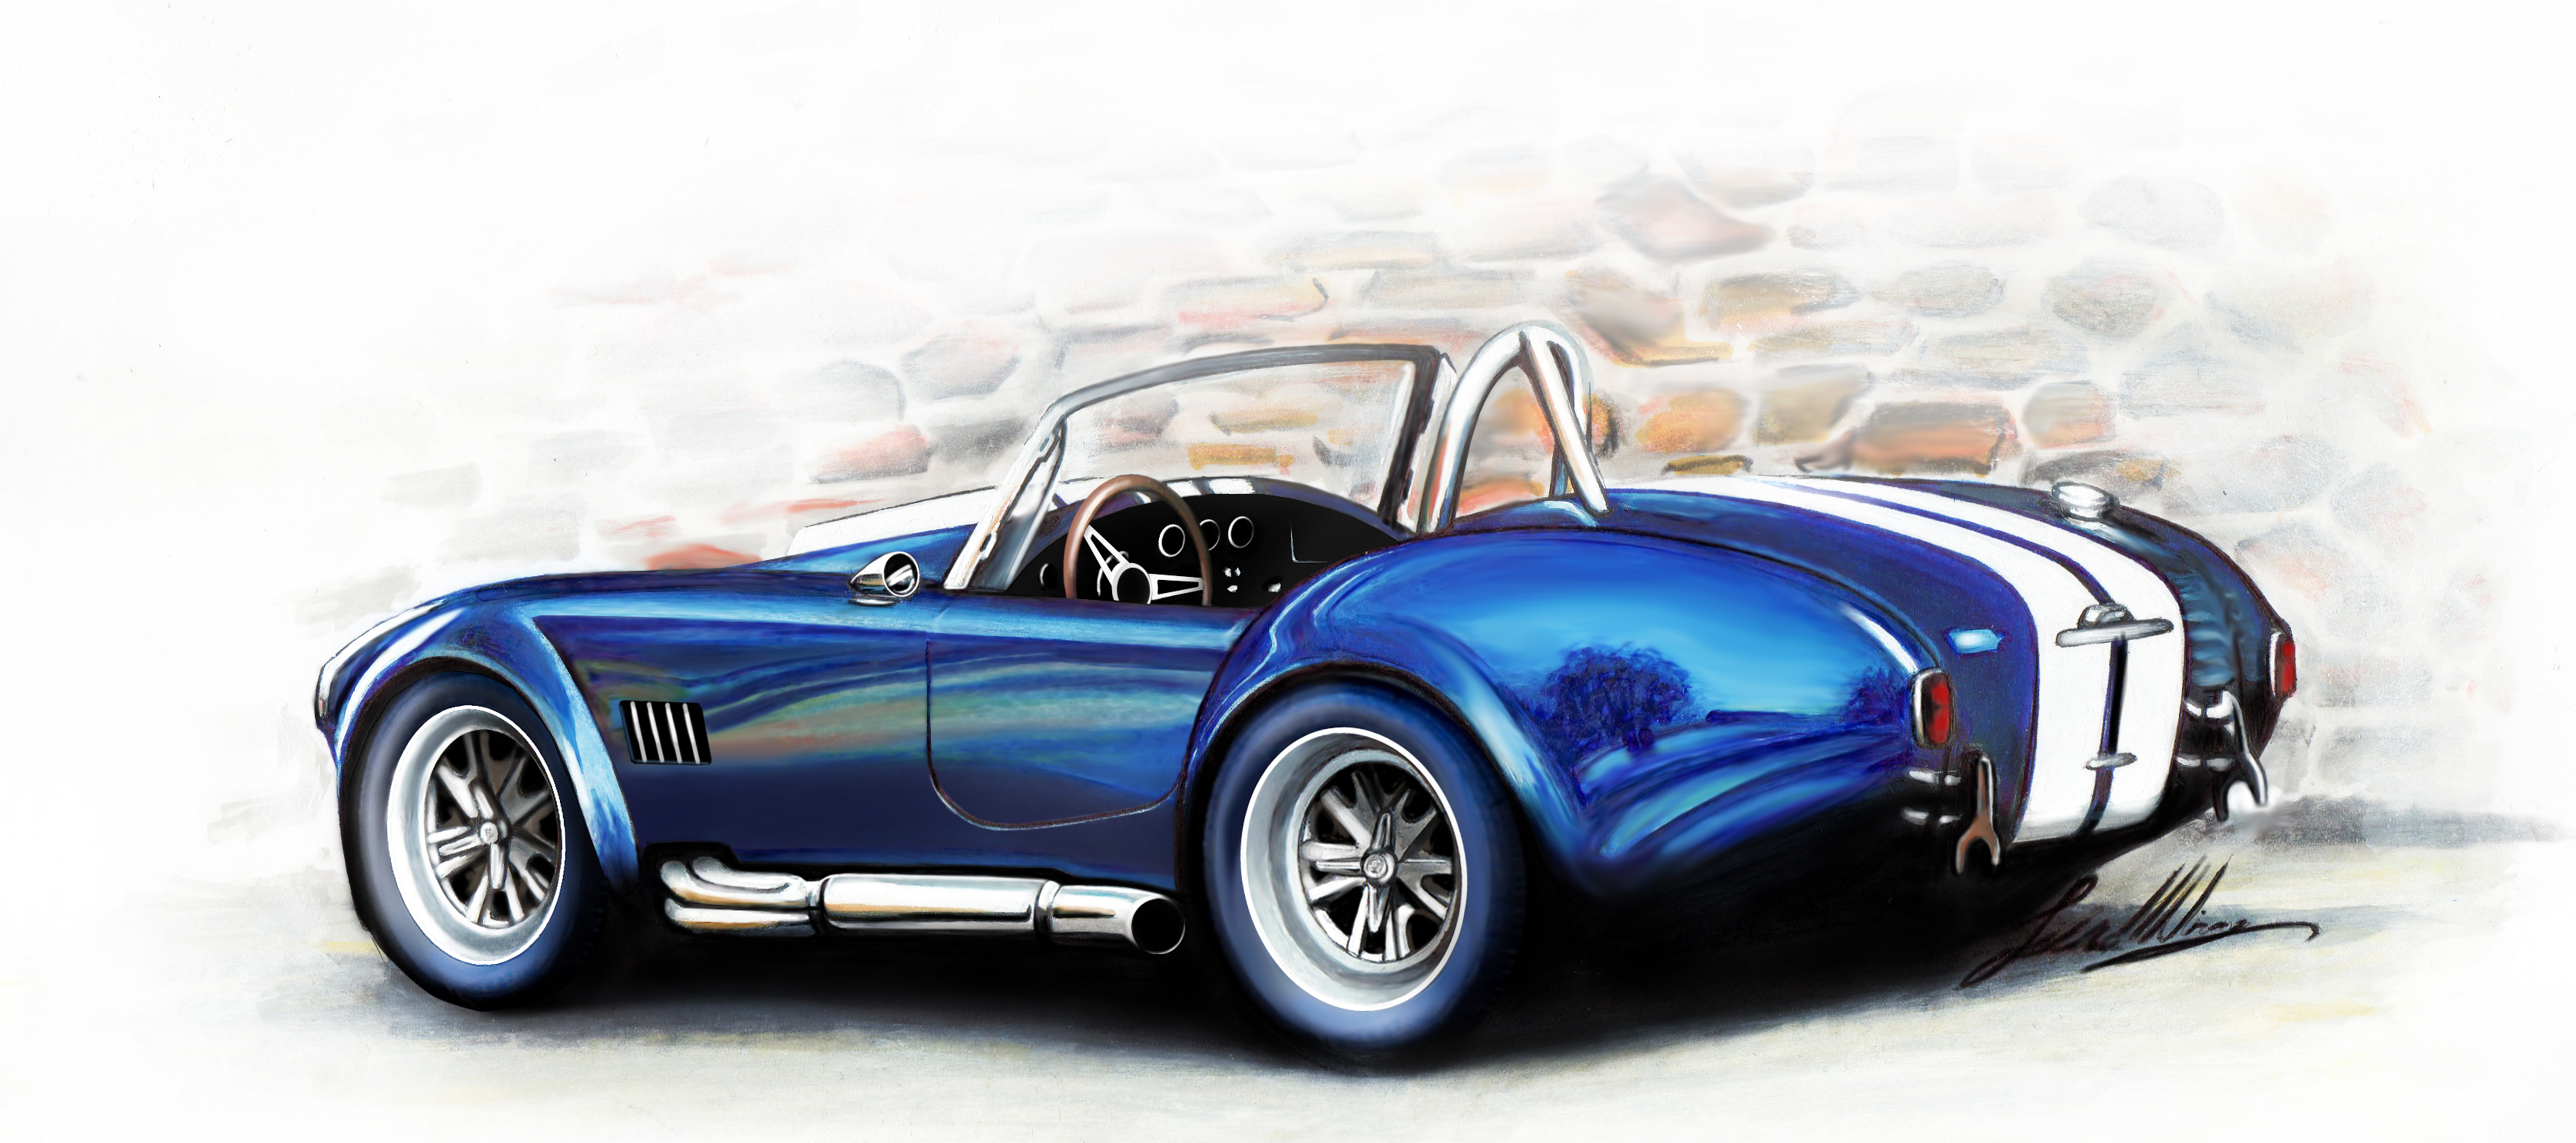 3354x1488 Shelby Cobra By Marchiori Luca My Sketch And Draw